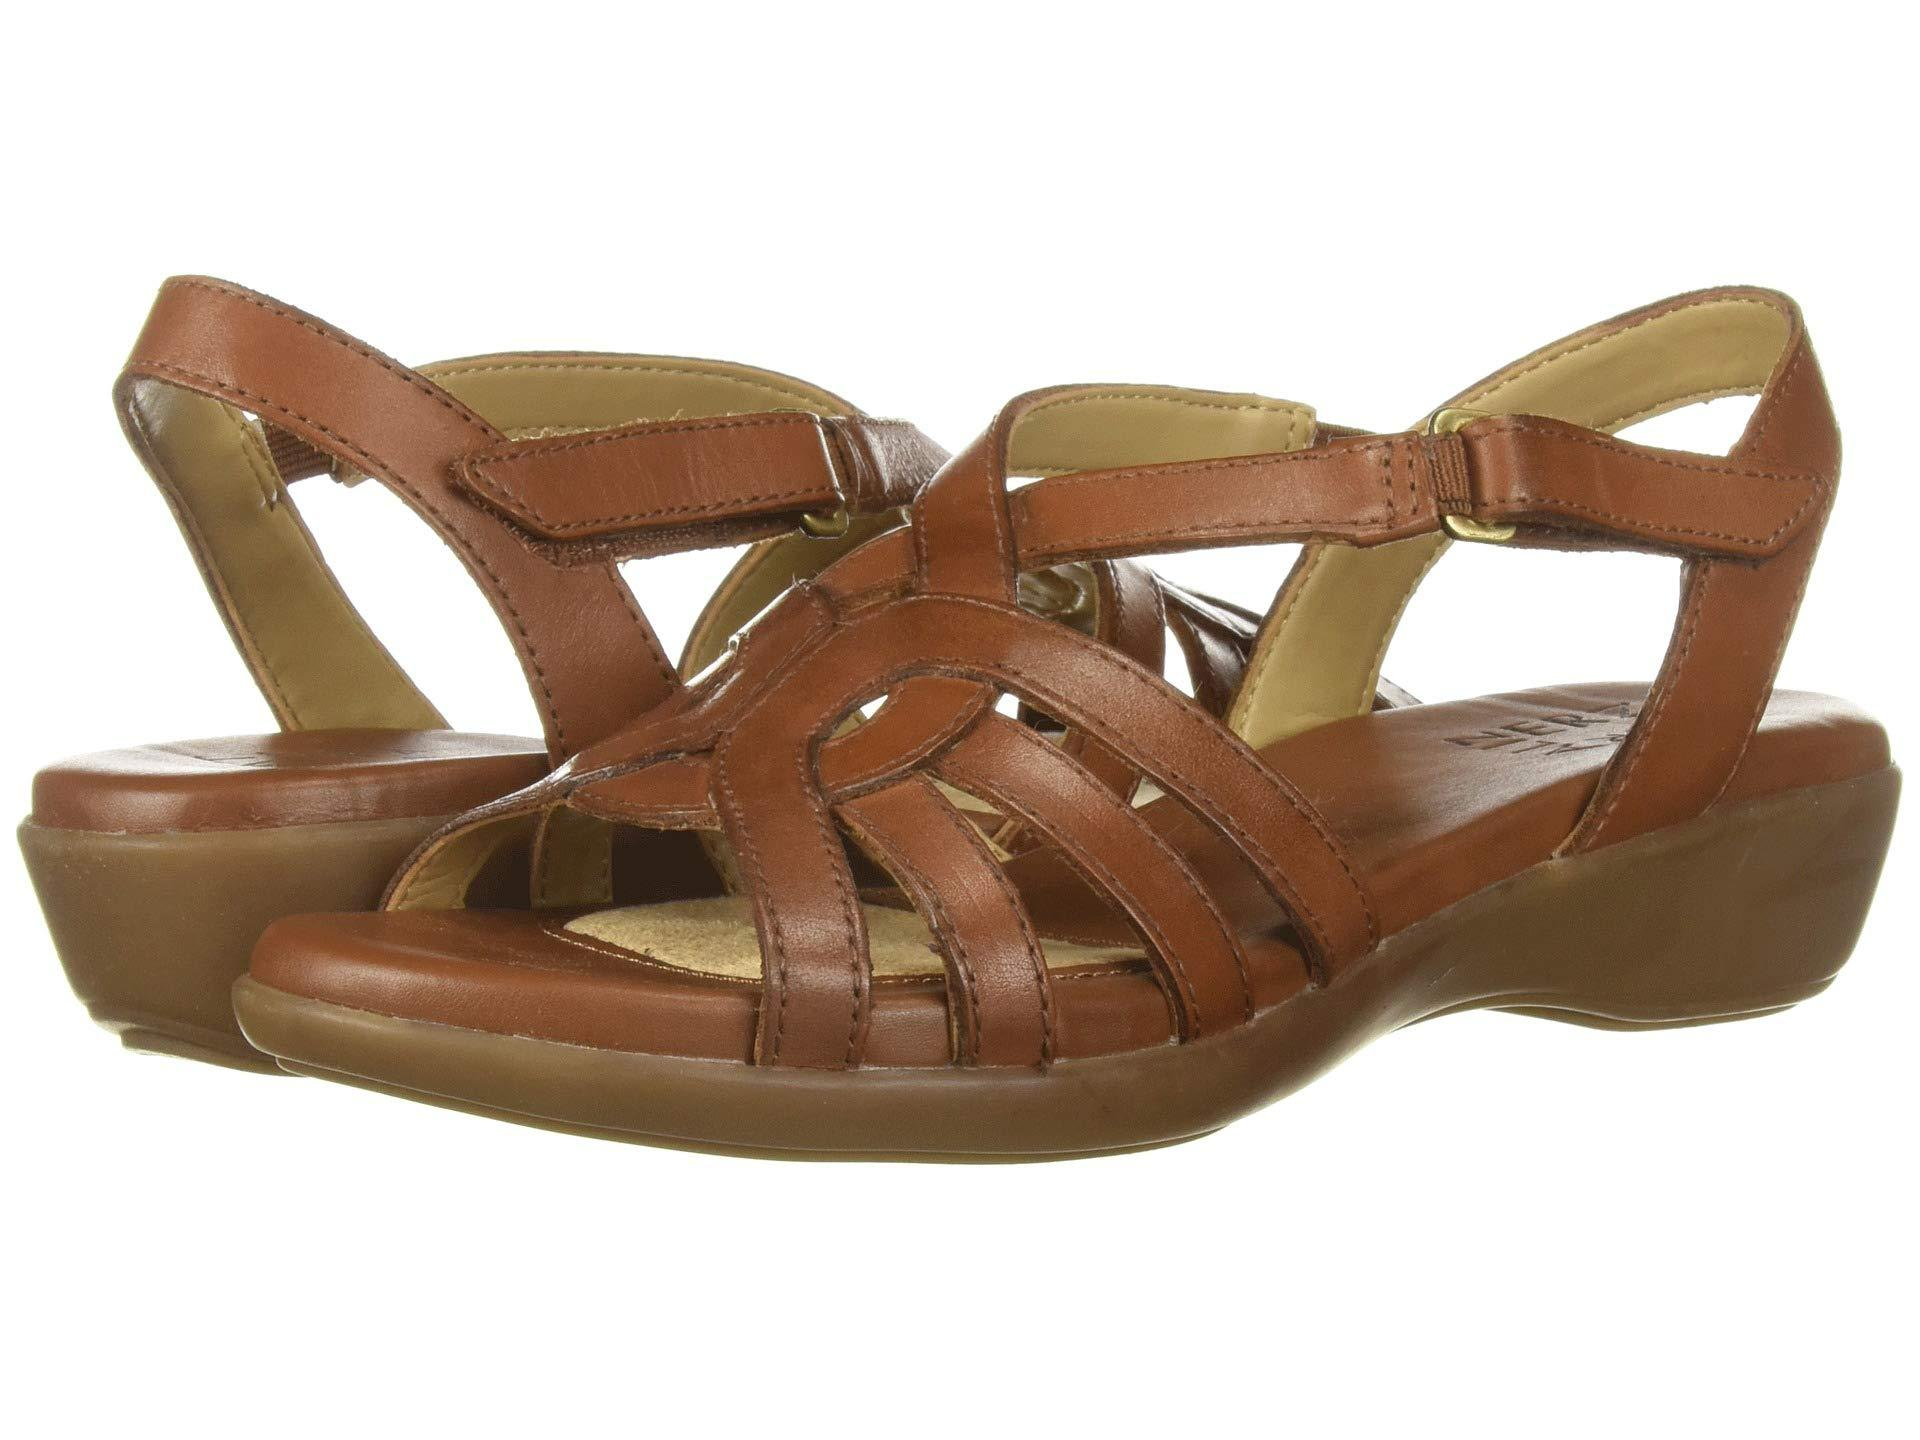 140fba01d09 Lyst - Naturalizer Nalani (black Leather) Women s Sandals in Brown